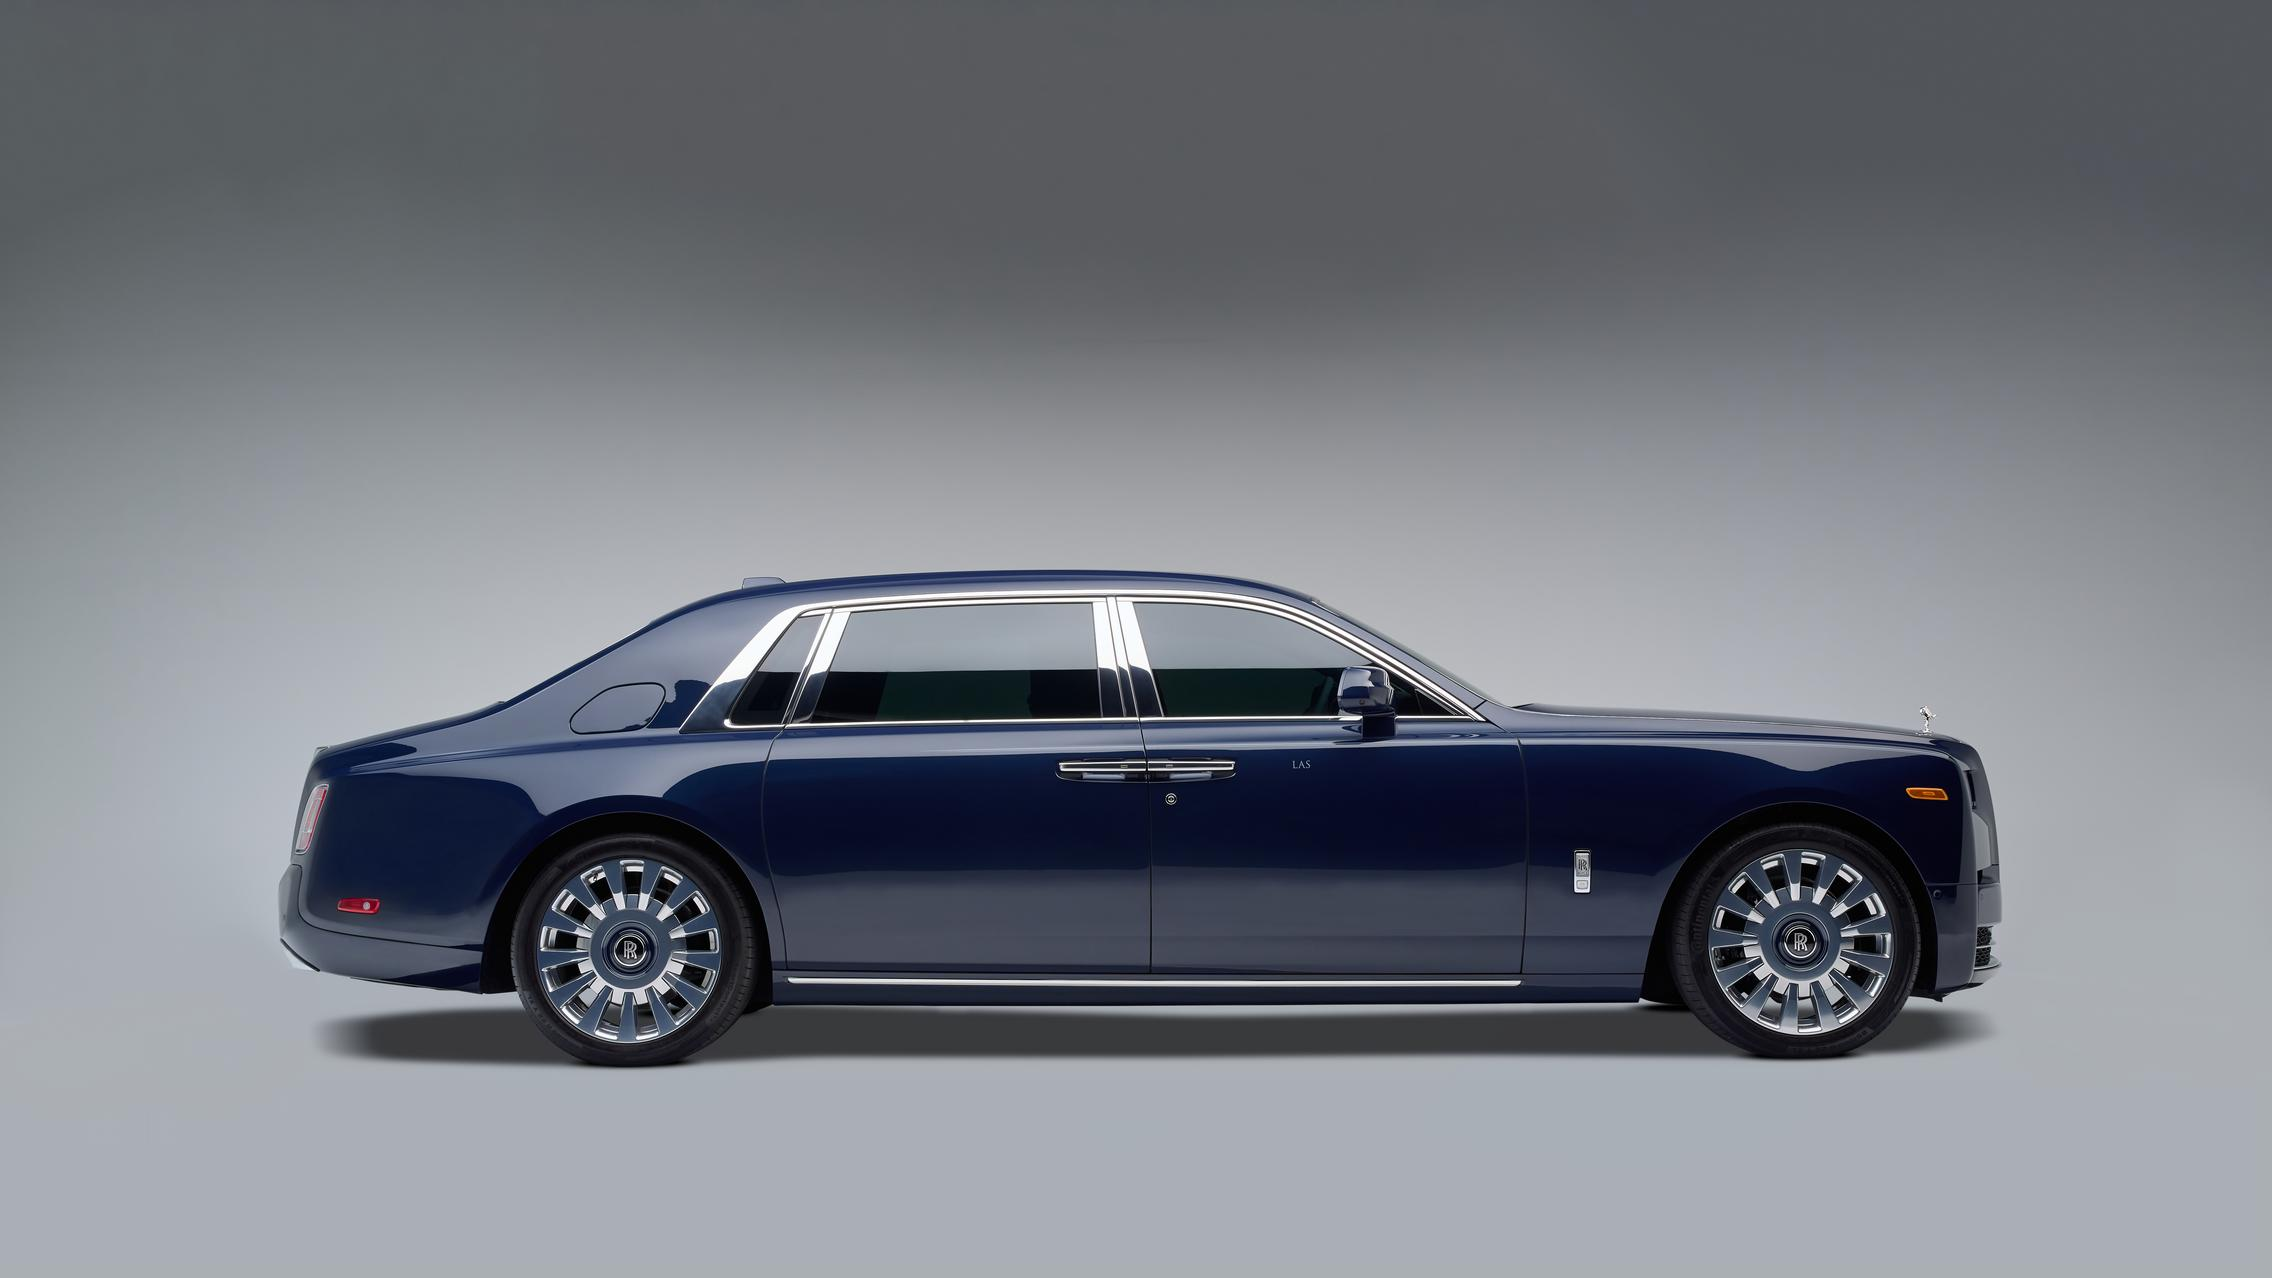 Rolls-Royce Phantom Side